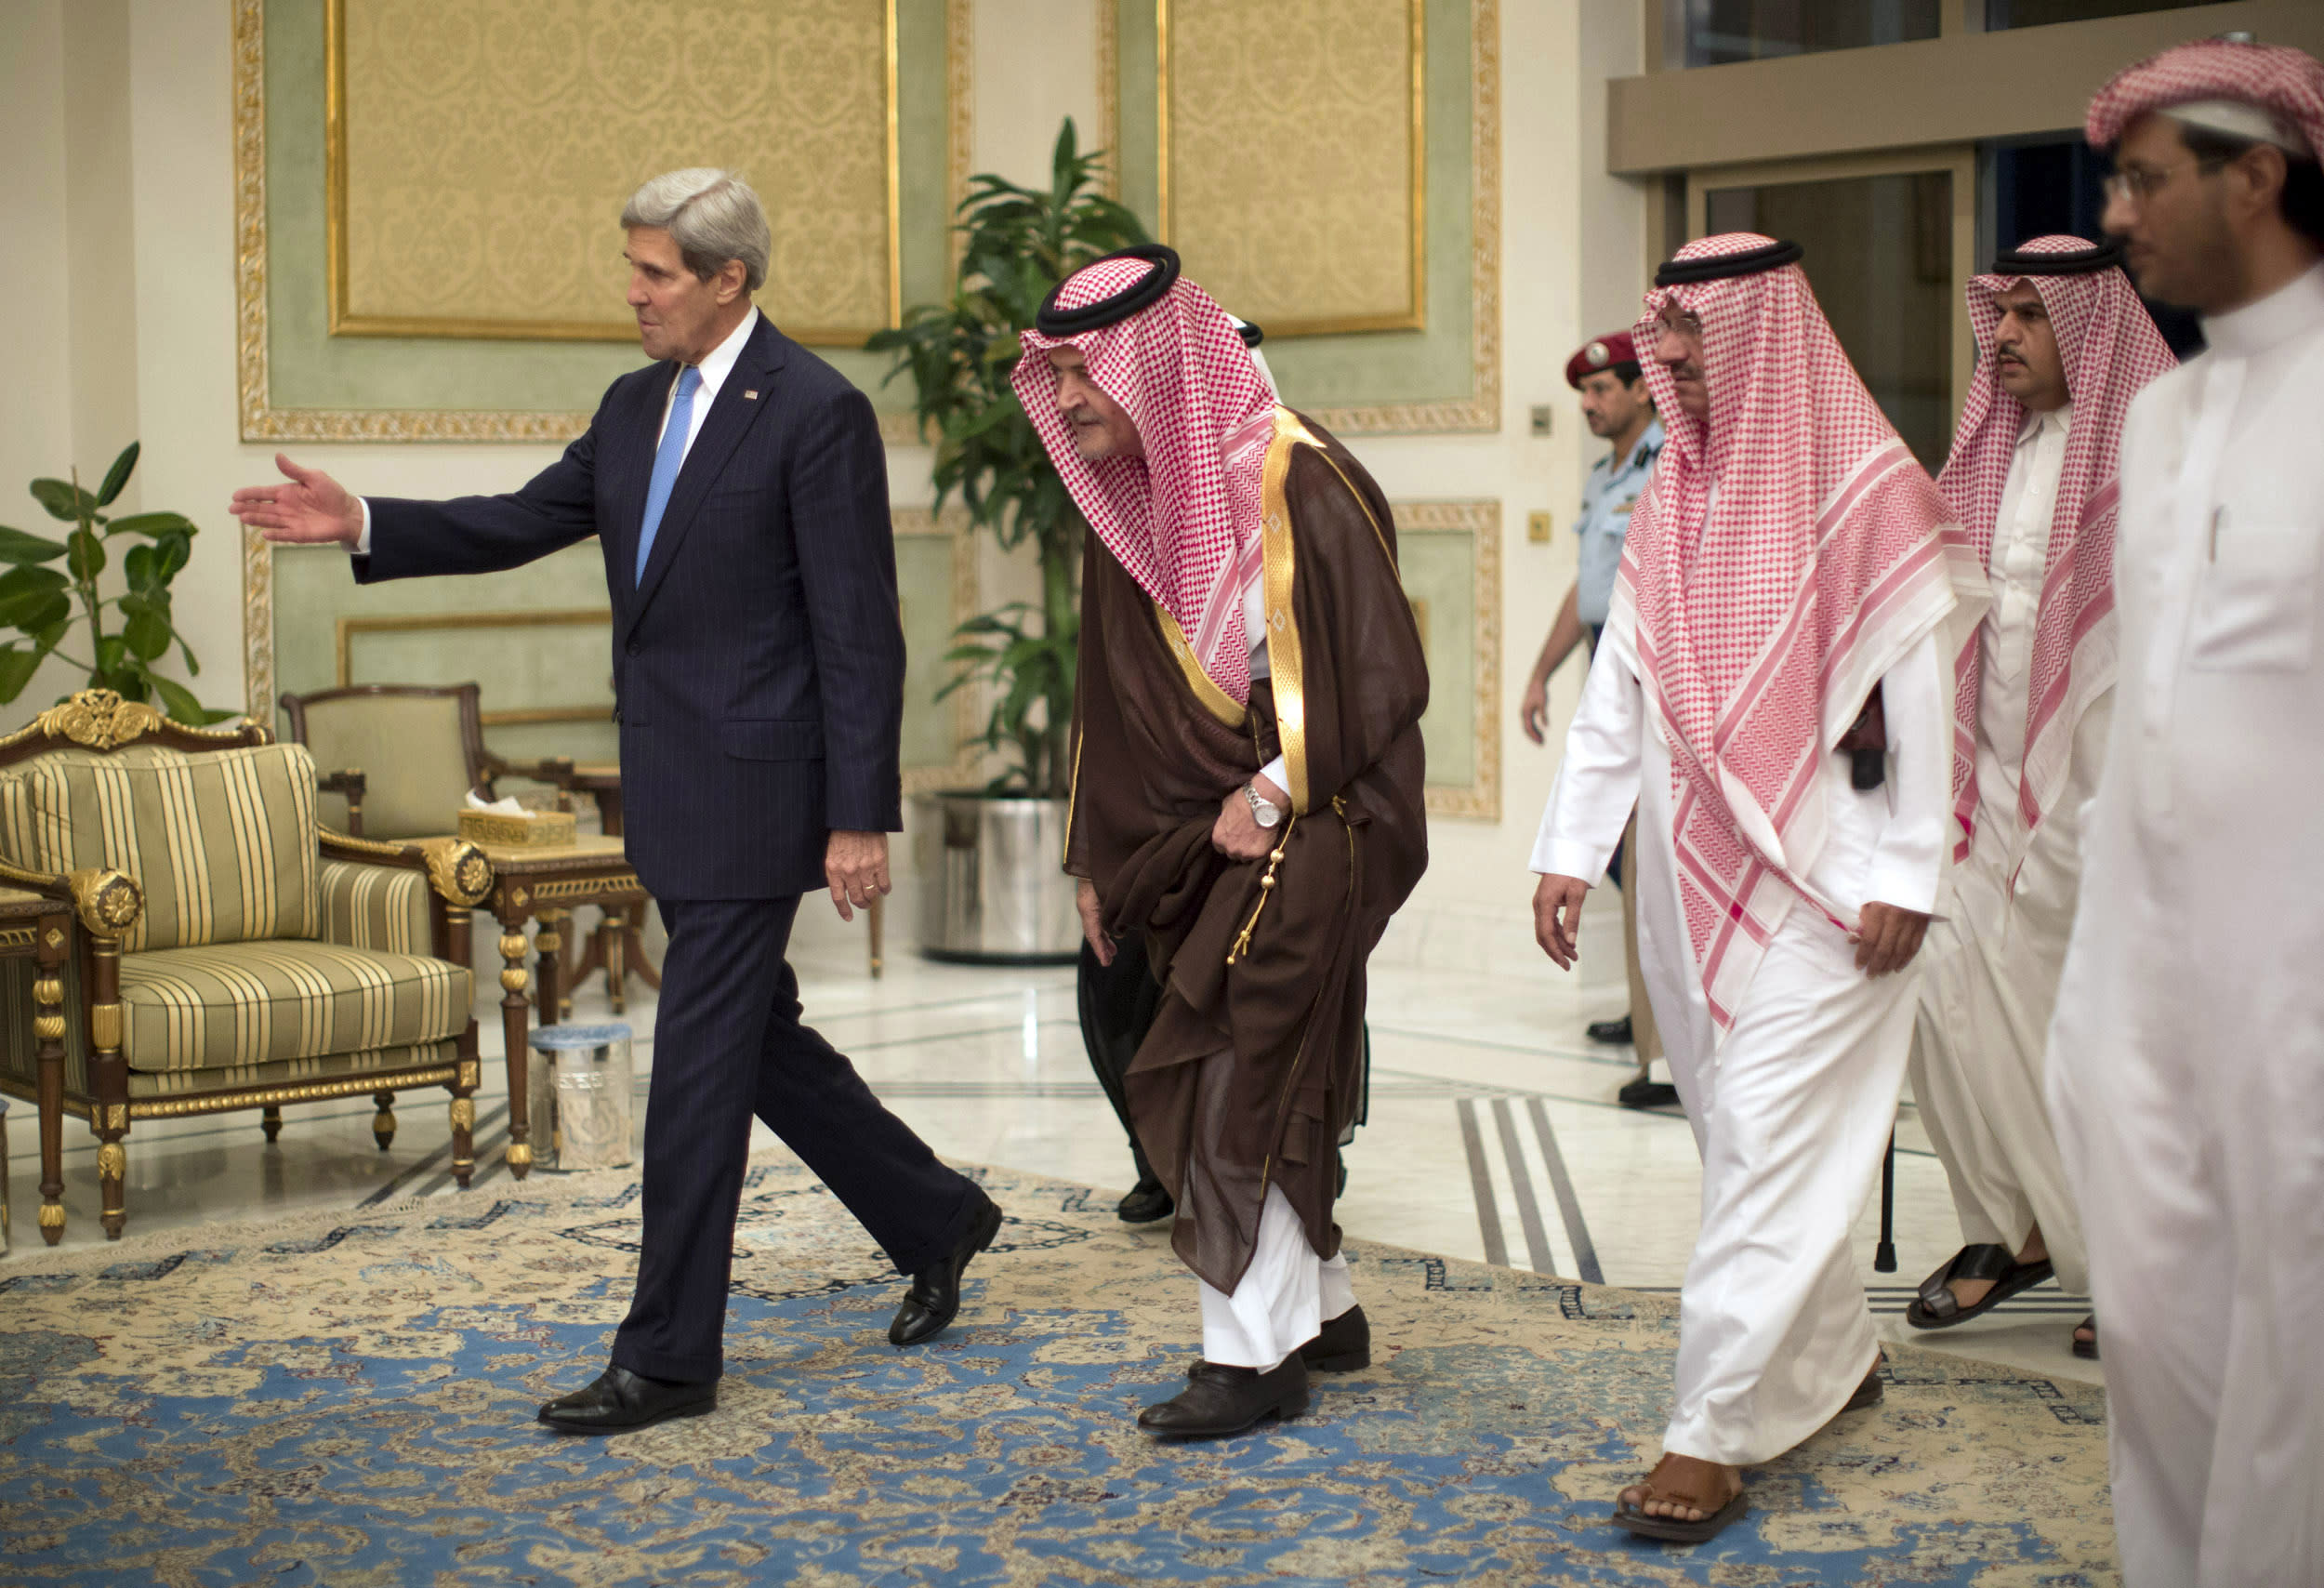 """FILE-In this Sunday, Nov. 3, 2013 file photo, U.S. Secretary of State John Kerry, left, is greeted by Saudi Foreign Minister Prince Saud Al-Faisal bin Abdulaziz al-Saud, after Kerry arrived in Riyadh, Saudi Arabia. In an unexpected consequence of the global diplomacy over Iran, Israel and Gulf Arab states led by Saudi Arabia are boosting back-channel contacts and finding increasing common ground over their mutual dismay with Tehran's drive to mend ties with the West and reach a nuclear deal. The """"strange alliance"""" _ in the word of one former diplomat _ highlights how the ripples from Iran are driving some allies apart while pushing foes closer. It also highlights the Sunni world's distress at the possibility of a bomb in the hands of a Shiite power. (AP Photo/Jason Reed, Pool, File)"""